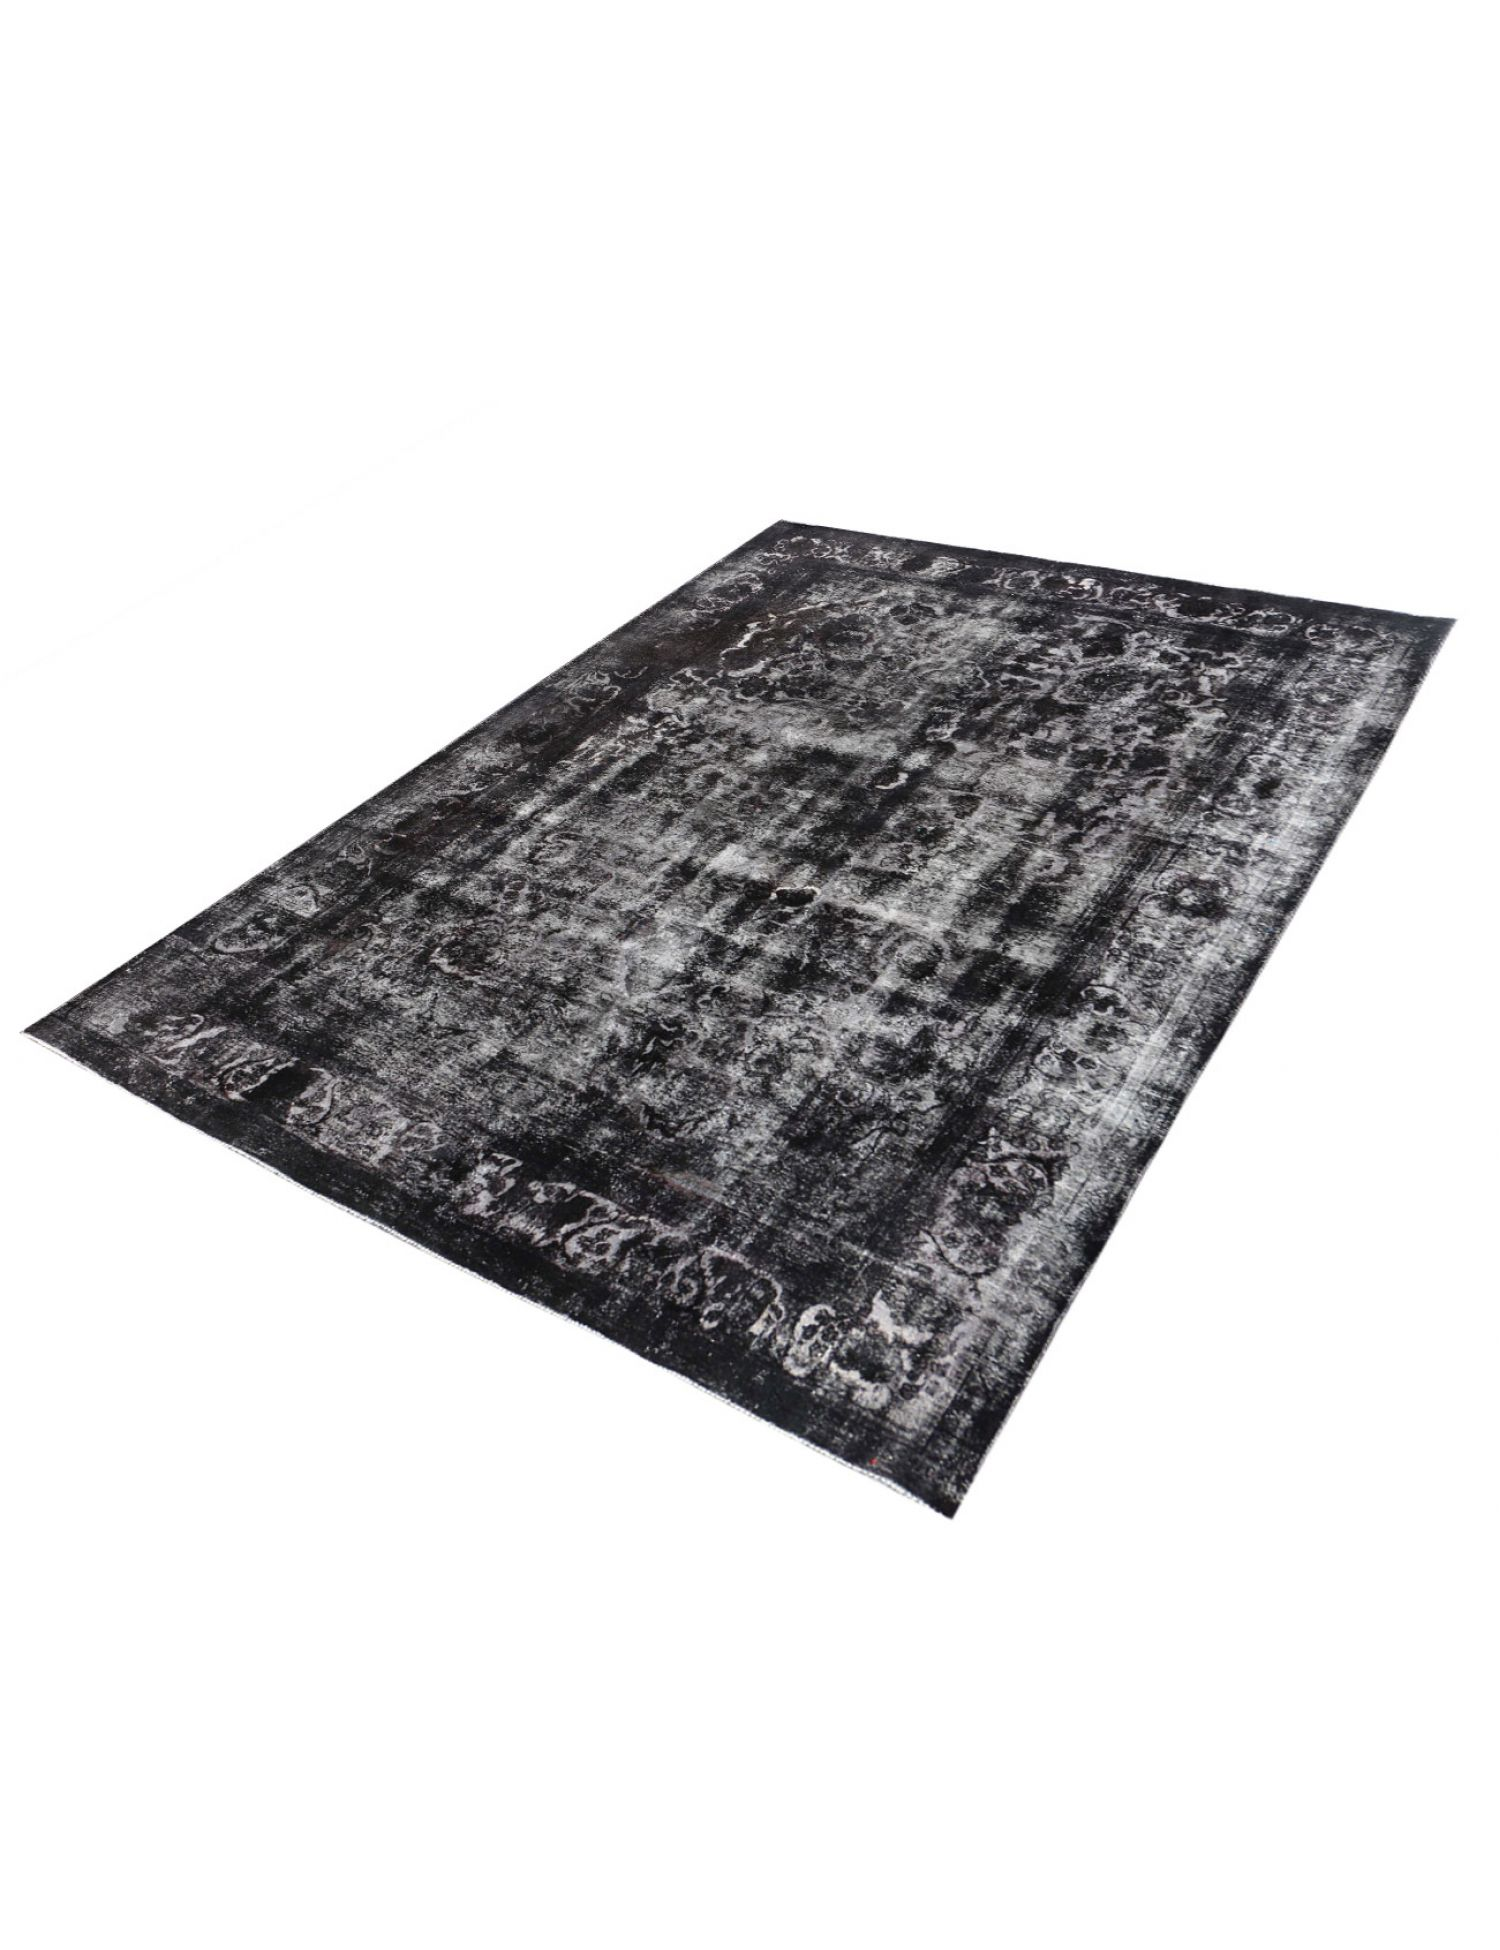 Vintage Carpet  black <br/>390 x 305 cm